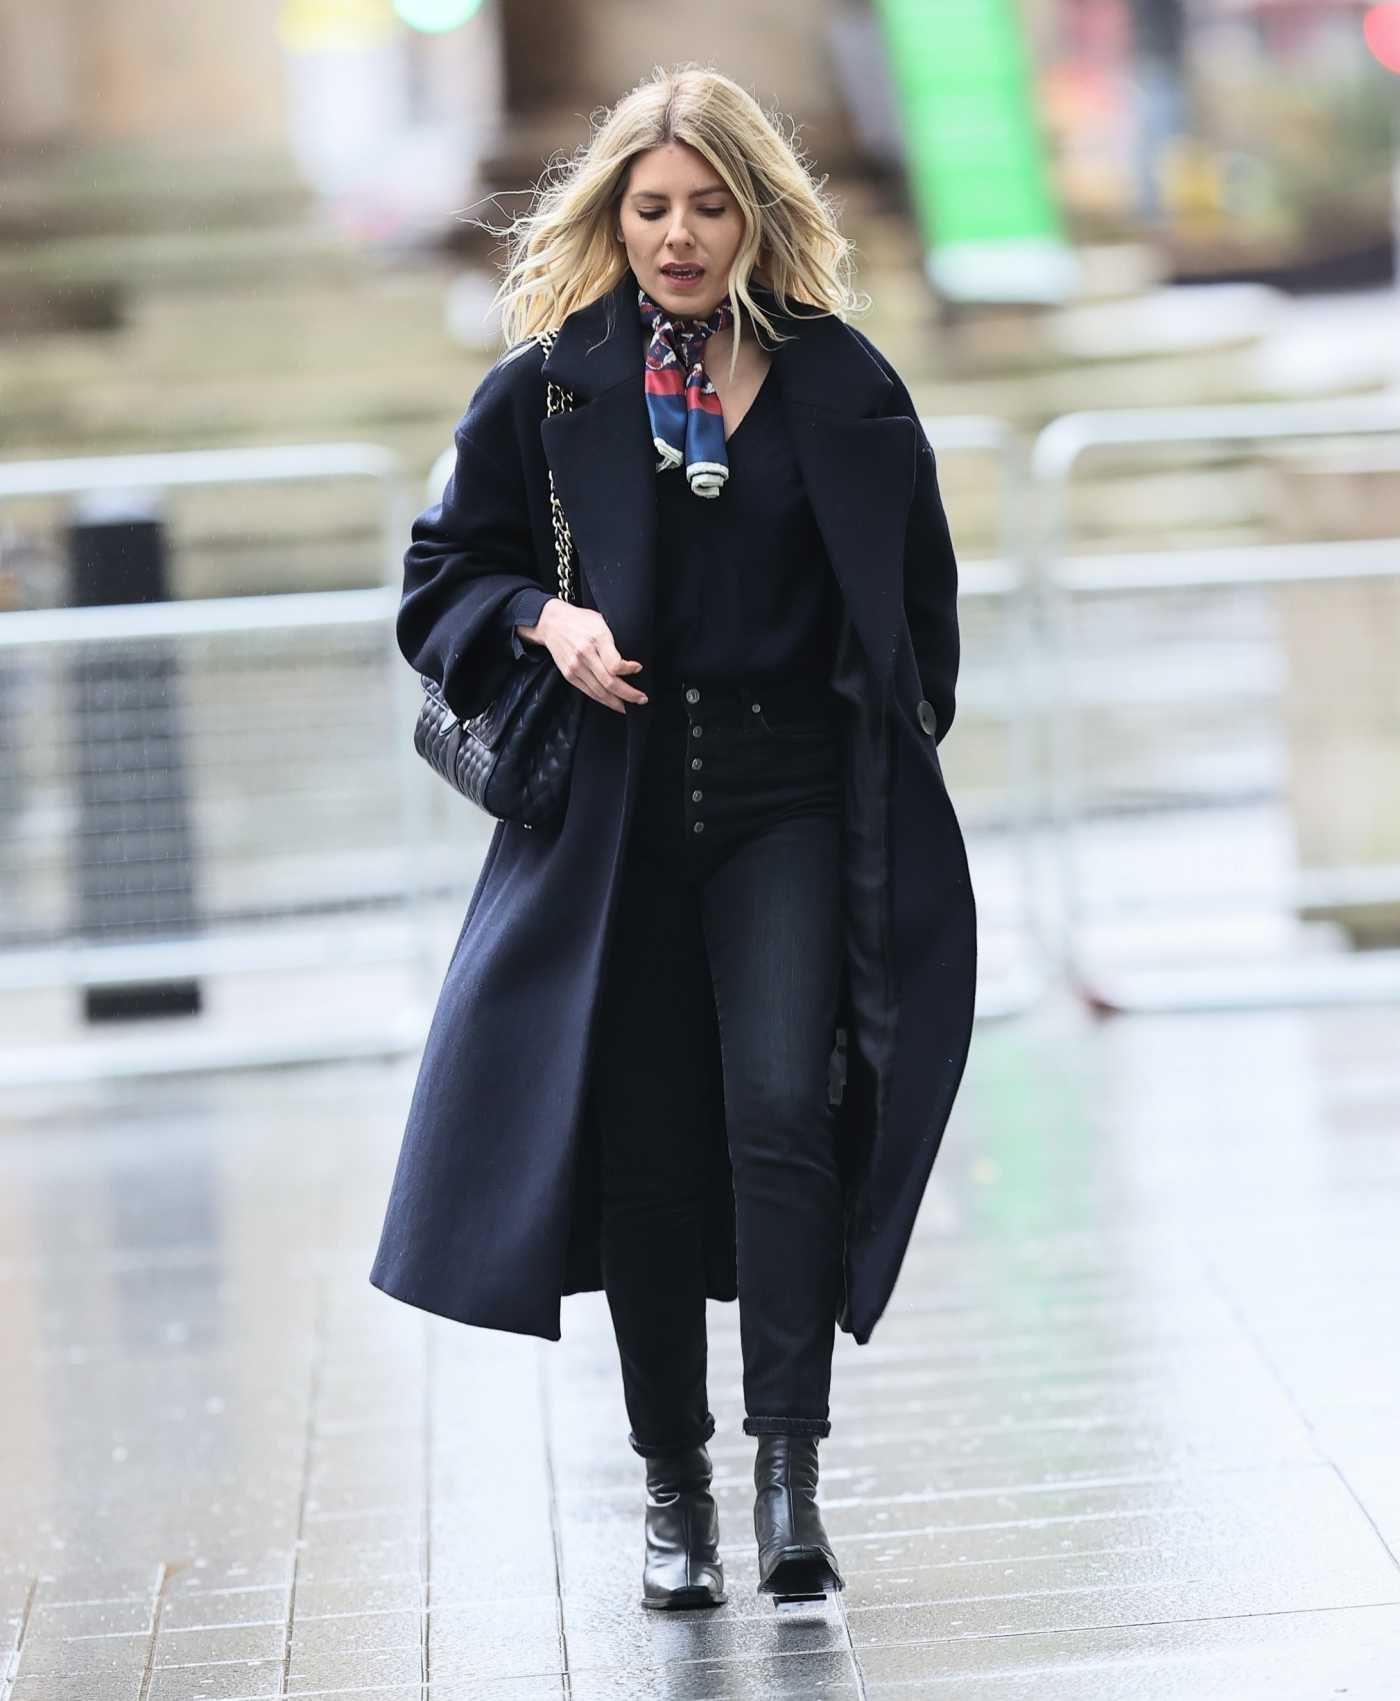 Mollie King in a Black Coat Arrives at the BBC Radio 1 in London 01/16/2021